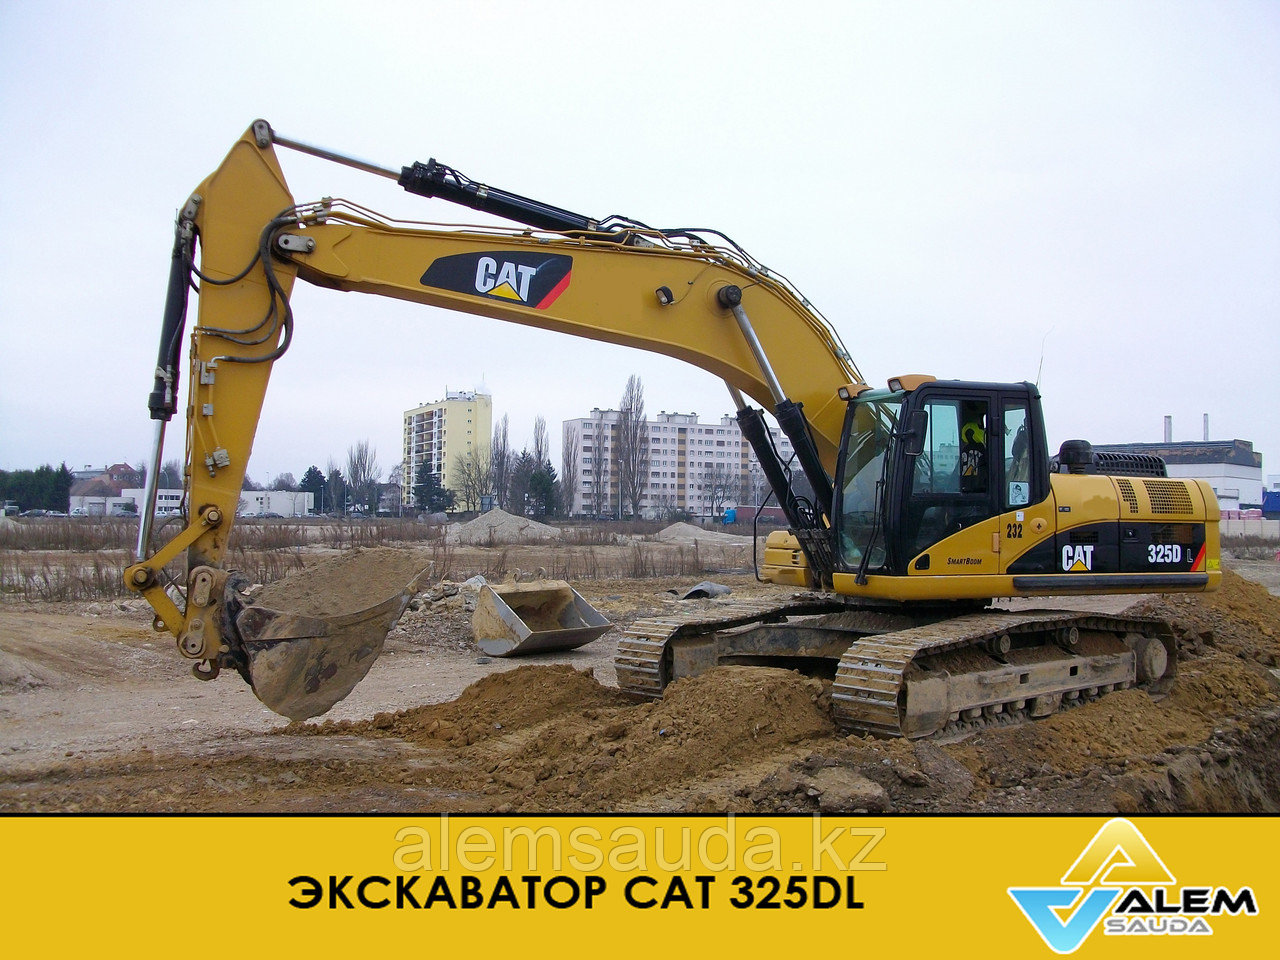 st komatsu vs caterpillar Komatsu vs cat strategy ppt at iim the products to gain economies in material or manufacturing rationalization of the manufacturing system scenario 2 komatsu.